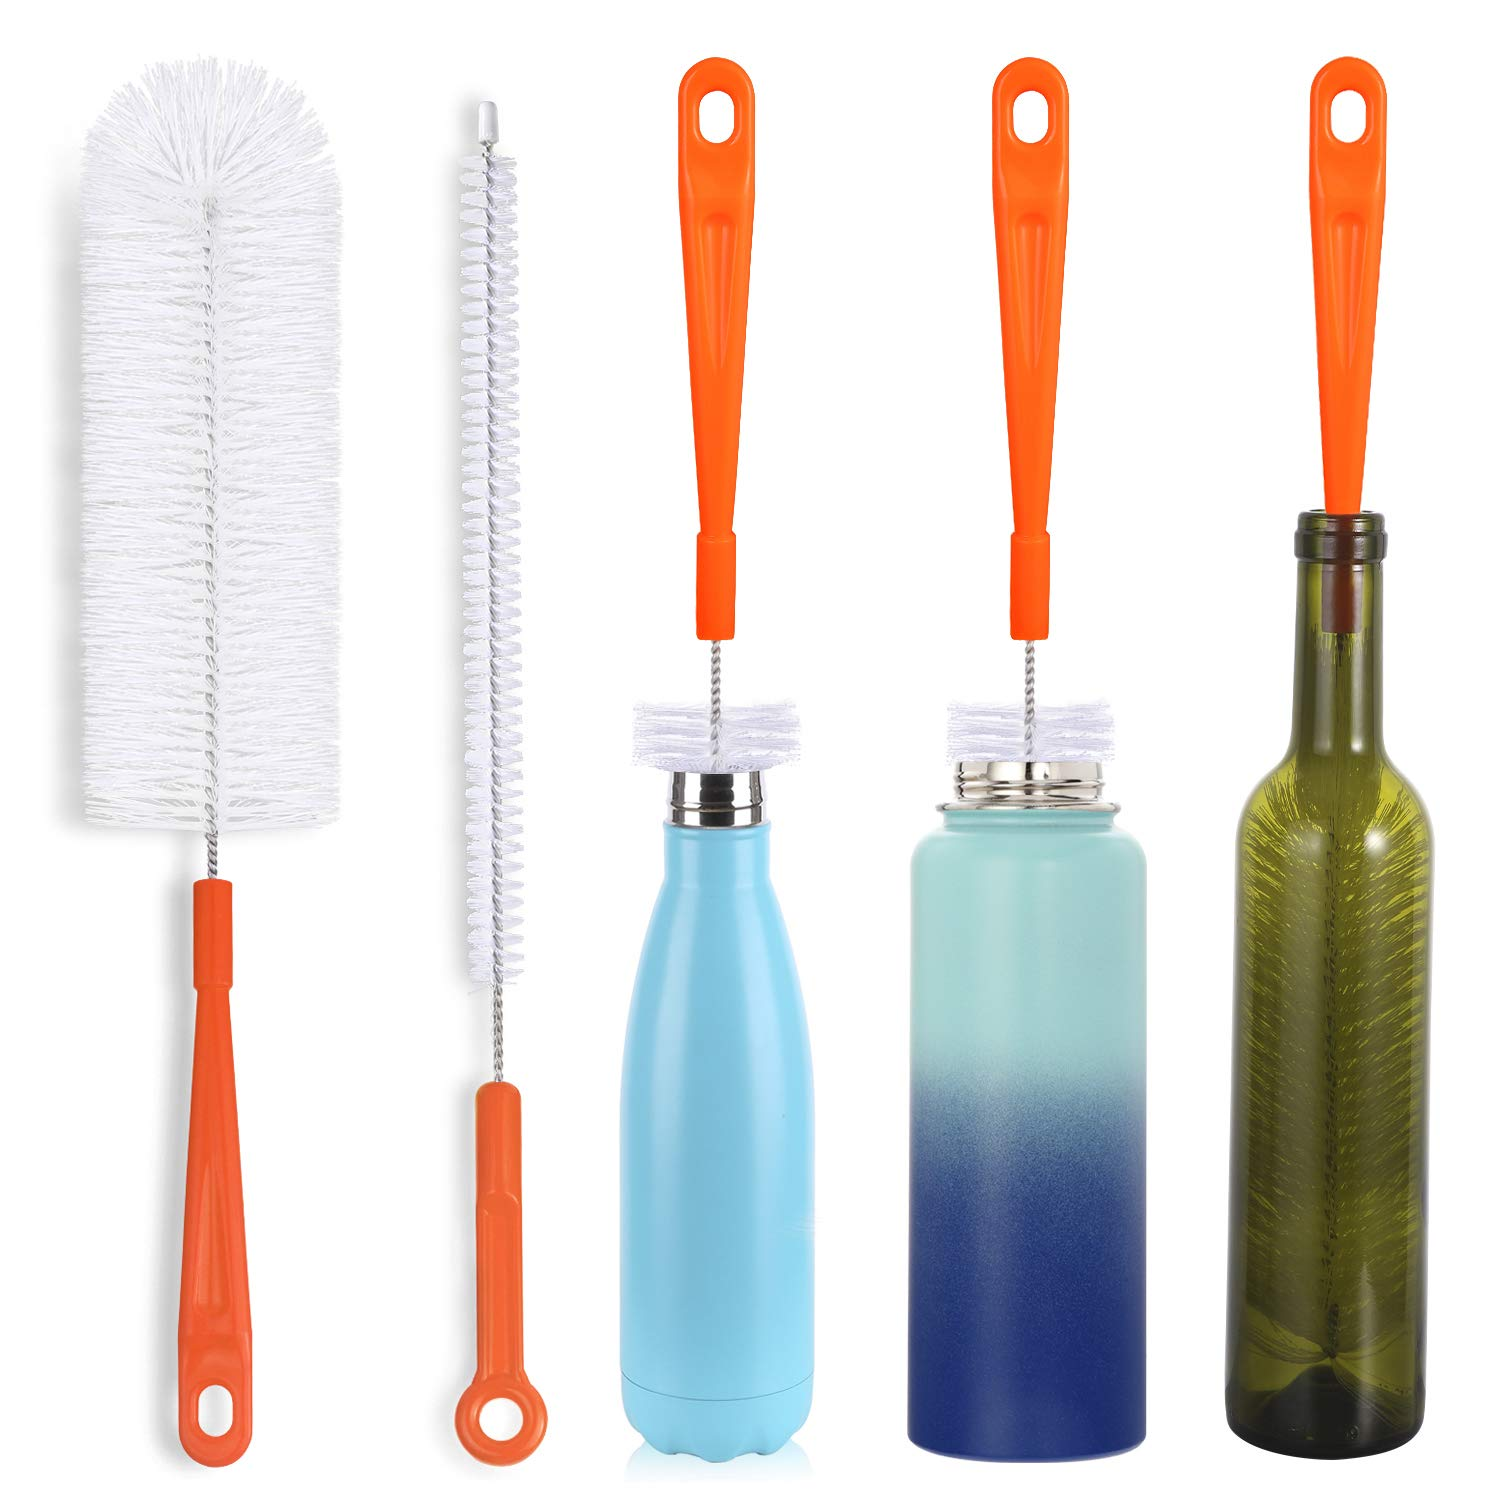 """16"""" Bottle Brush Cleaner for Water Bottle - Long Handle Bottle Brush for Cleaning Thermos Hydro Flask Contigo S'Well Simple Modern Narrow Neck Sport Bottles Kombucha Beer Wine Decanter and Jugs"""